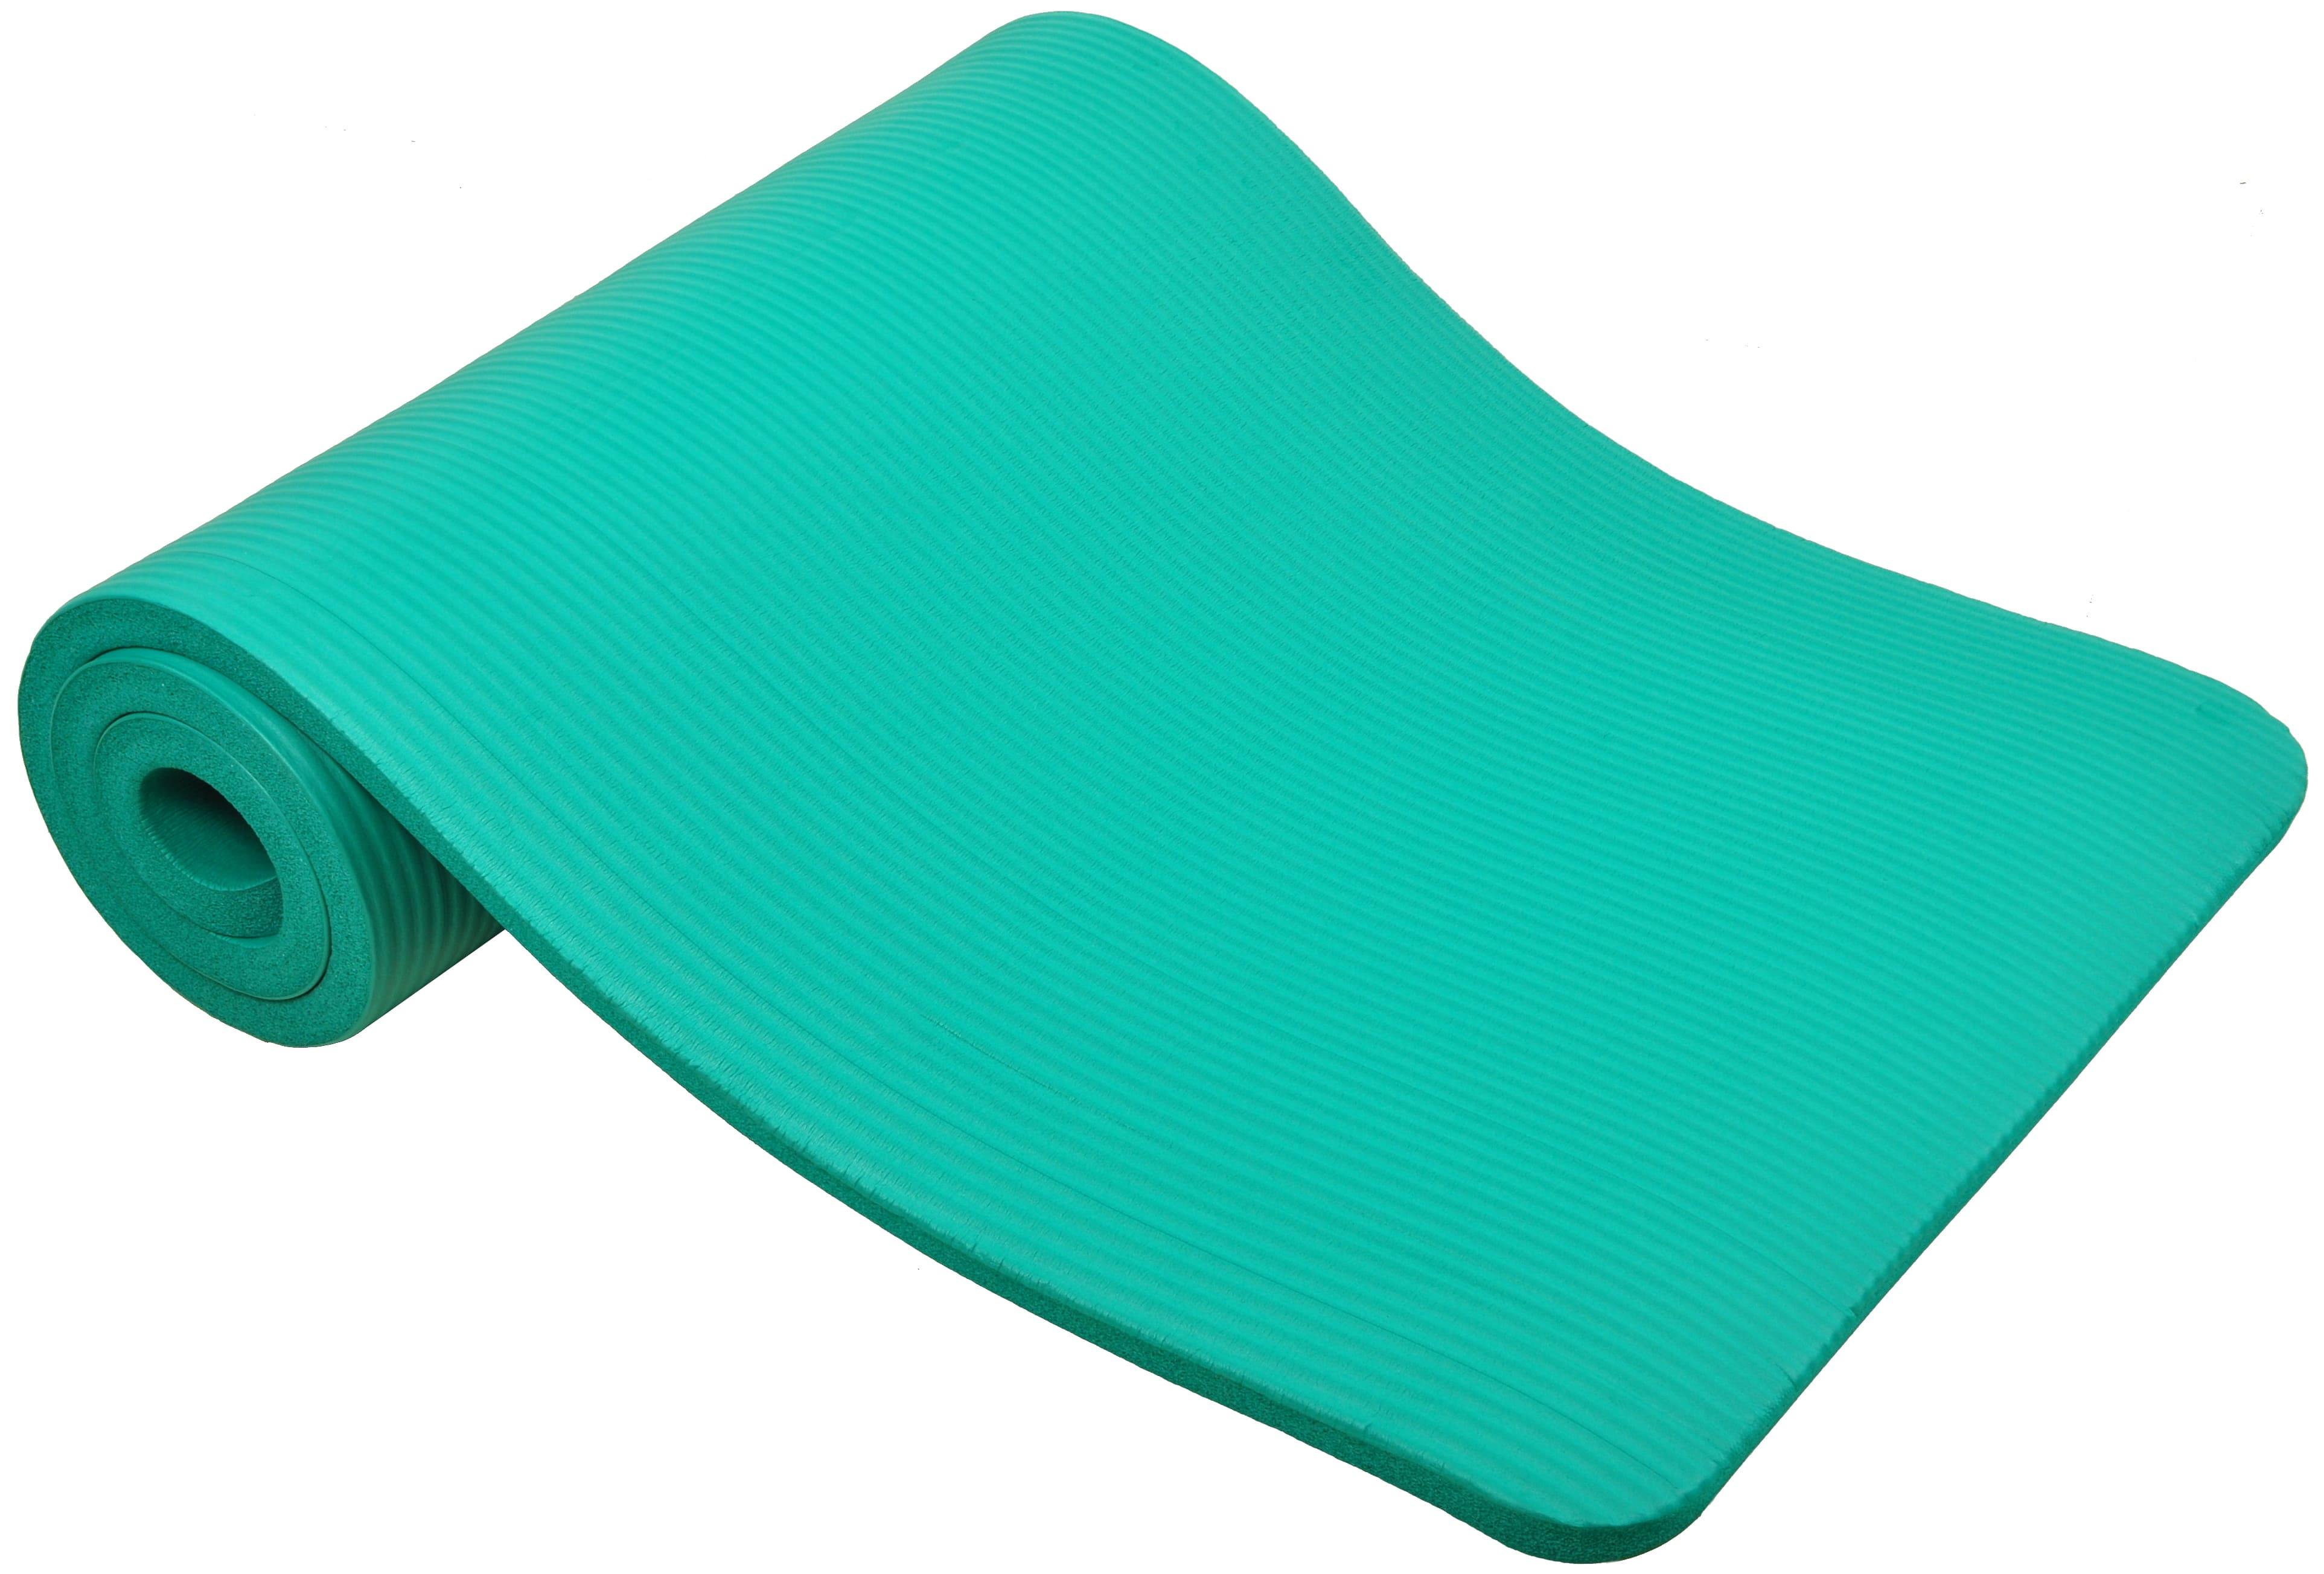 [US Direct] Original BalanceFrom GoCloud All-Purpose 1-Inch Extra Thick High Density Anti-Tear Exercise Yoga Mat with Carrying Strap, Black Green